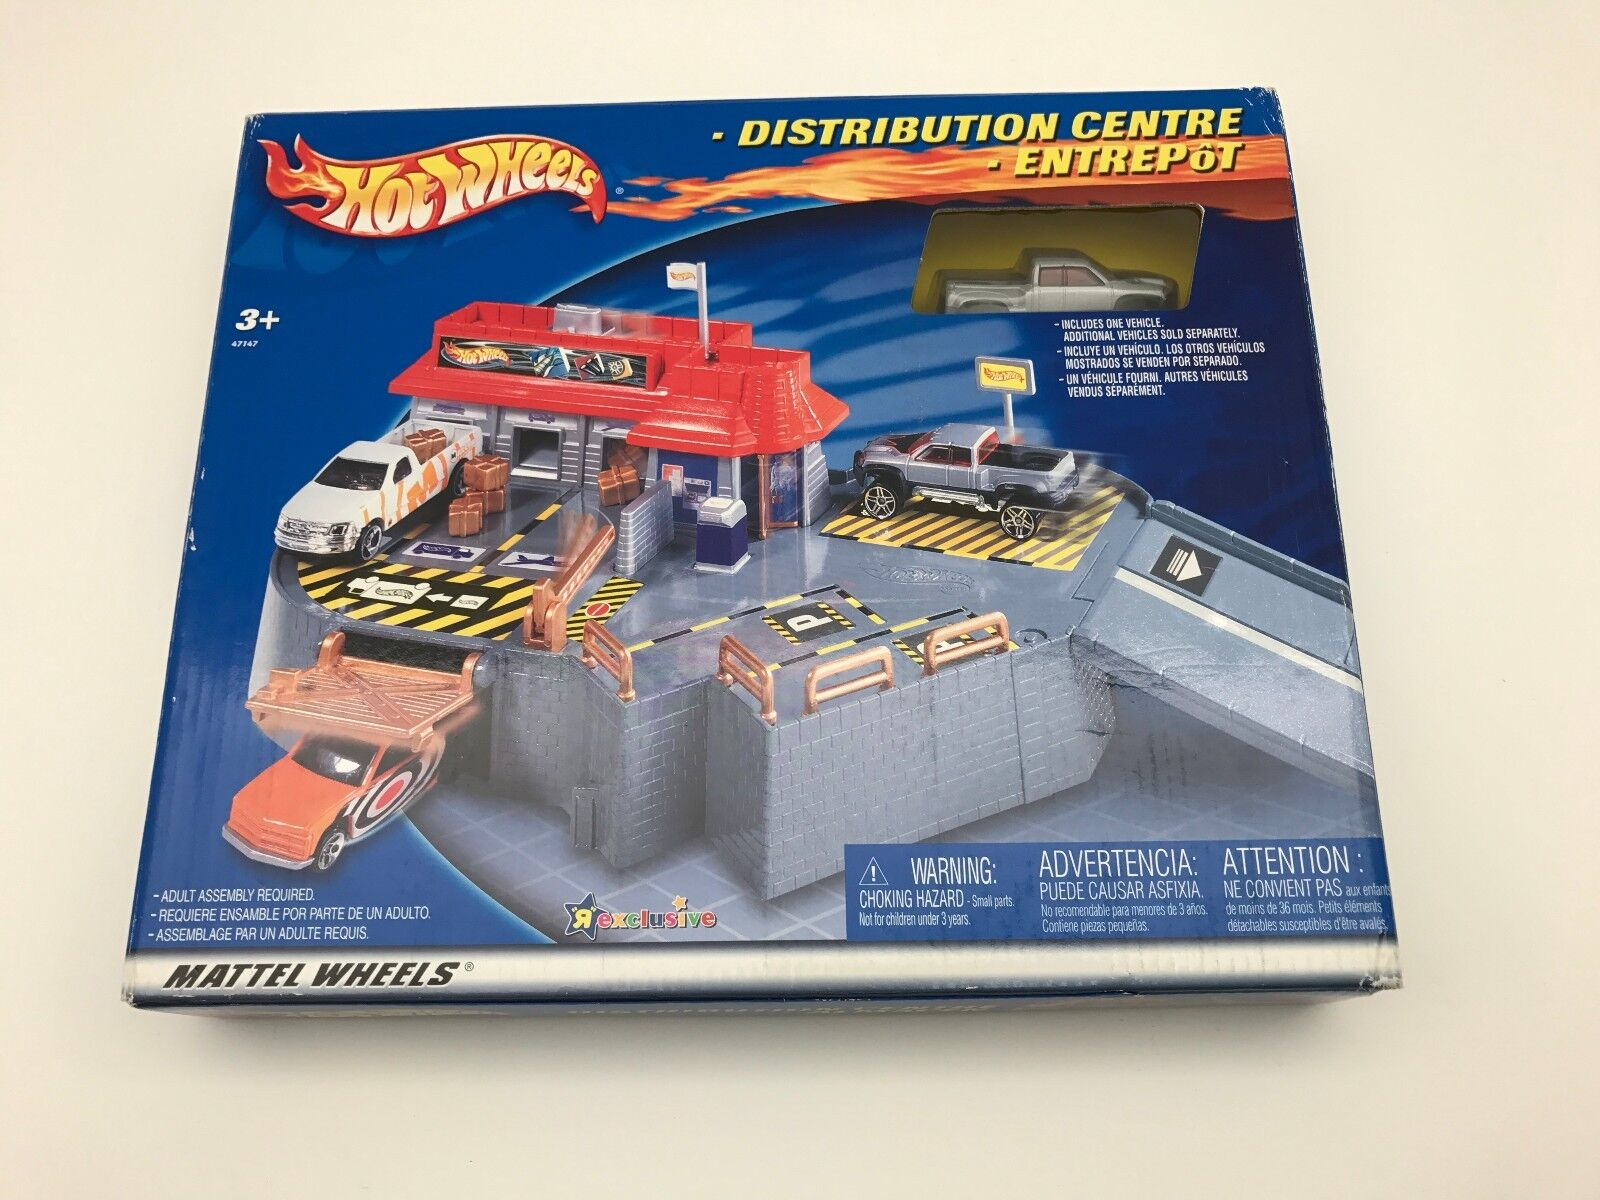 Brand New in BOX Mattel Hot Wheels Distribution Centre Toy R Us Exclusive